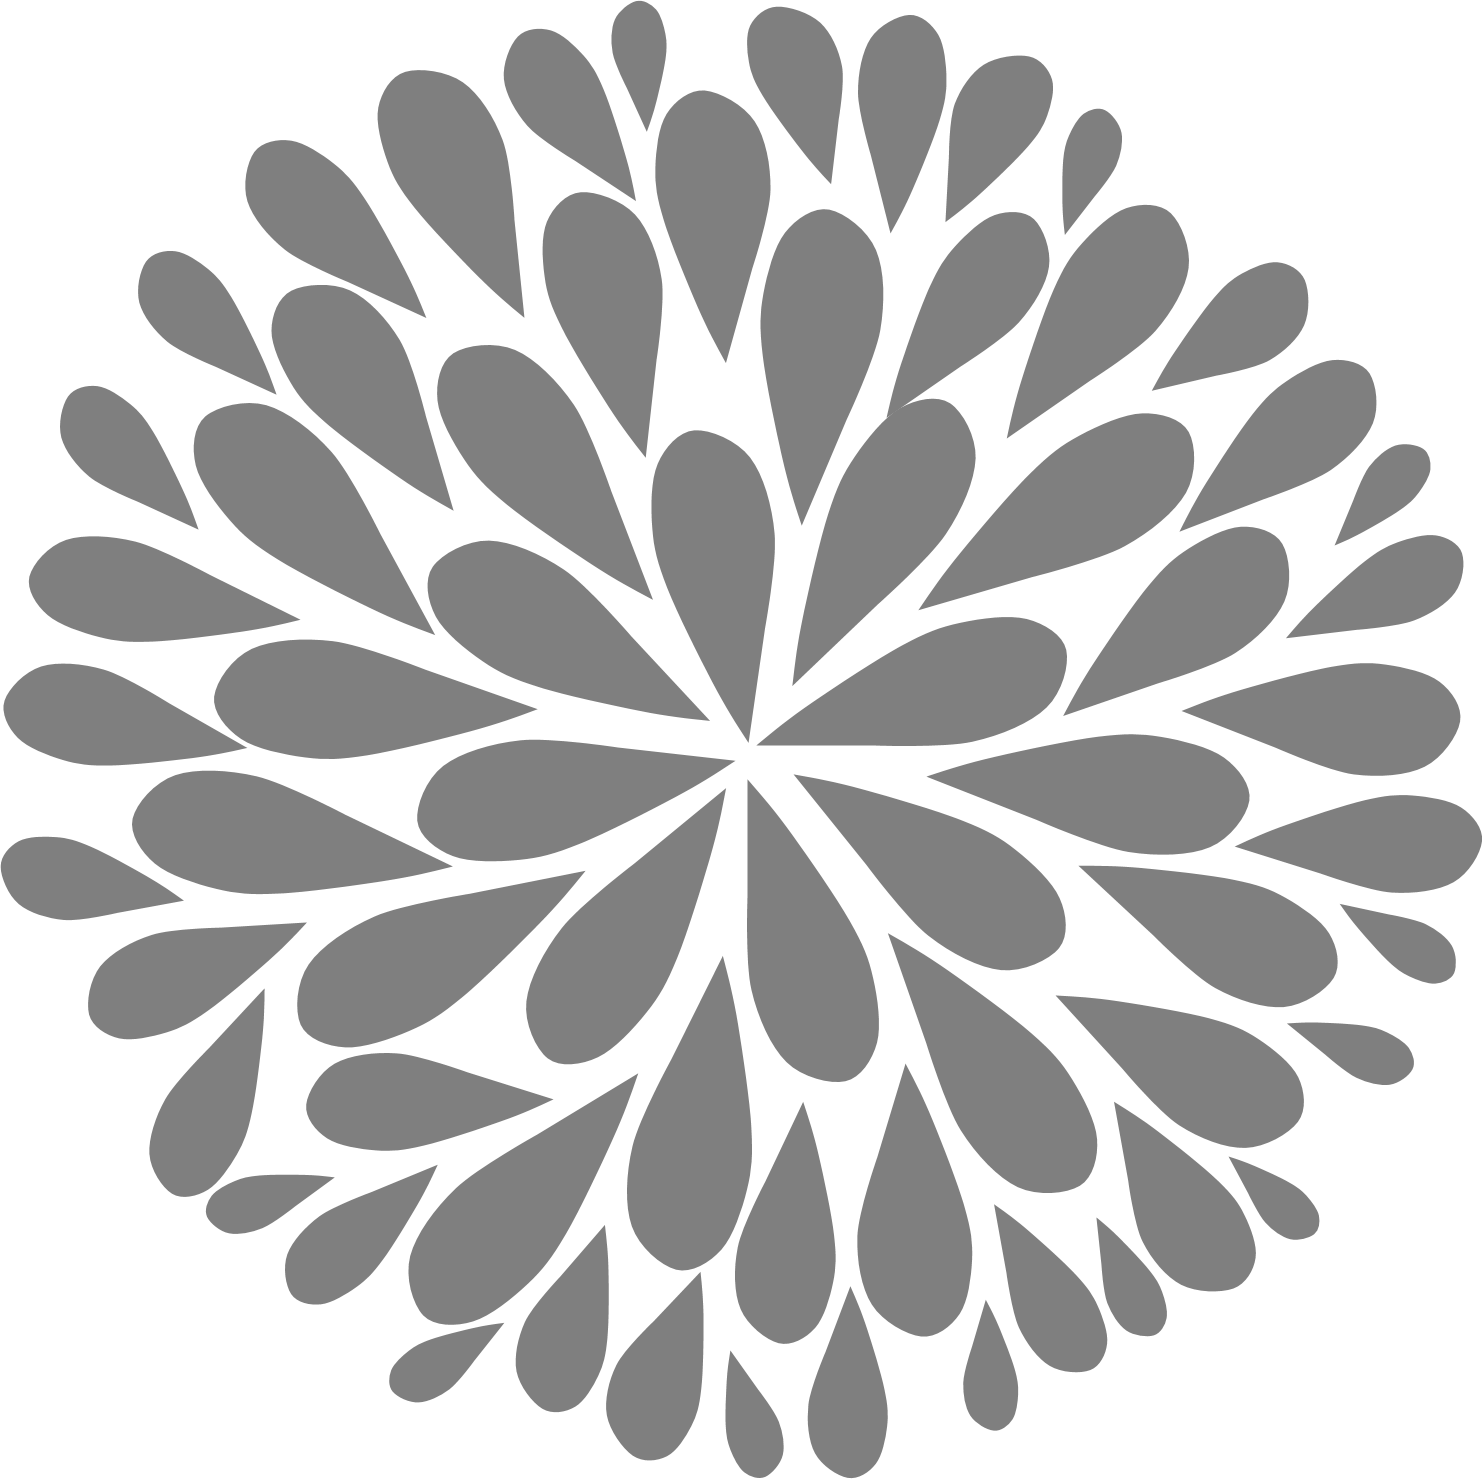 Clipart black and white flower design image transparent download Black And White Flower Clipart Collection (35+) image transparent download